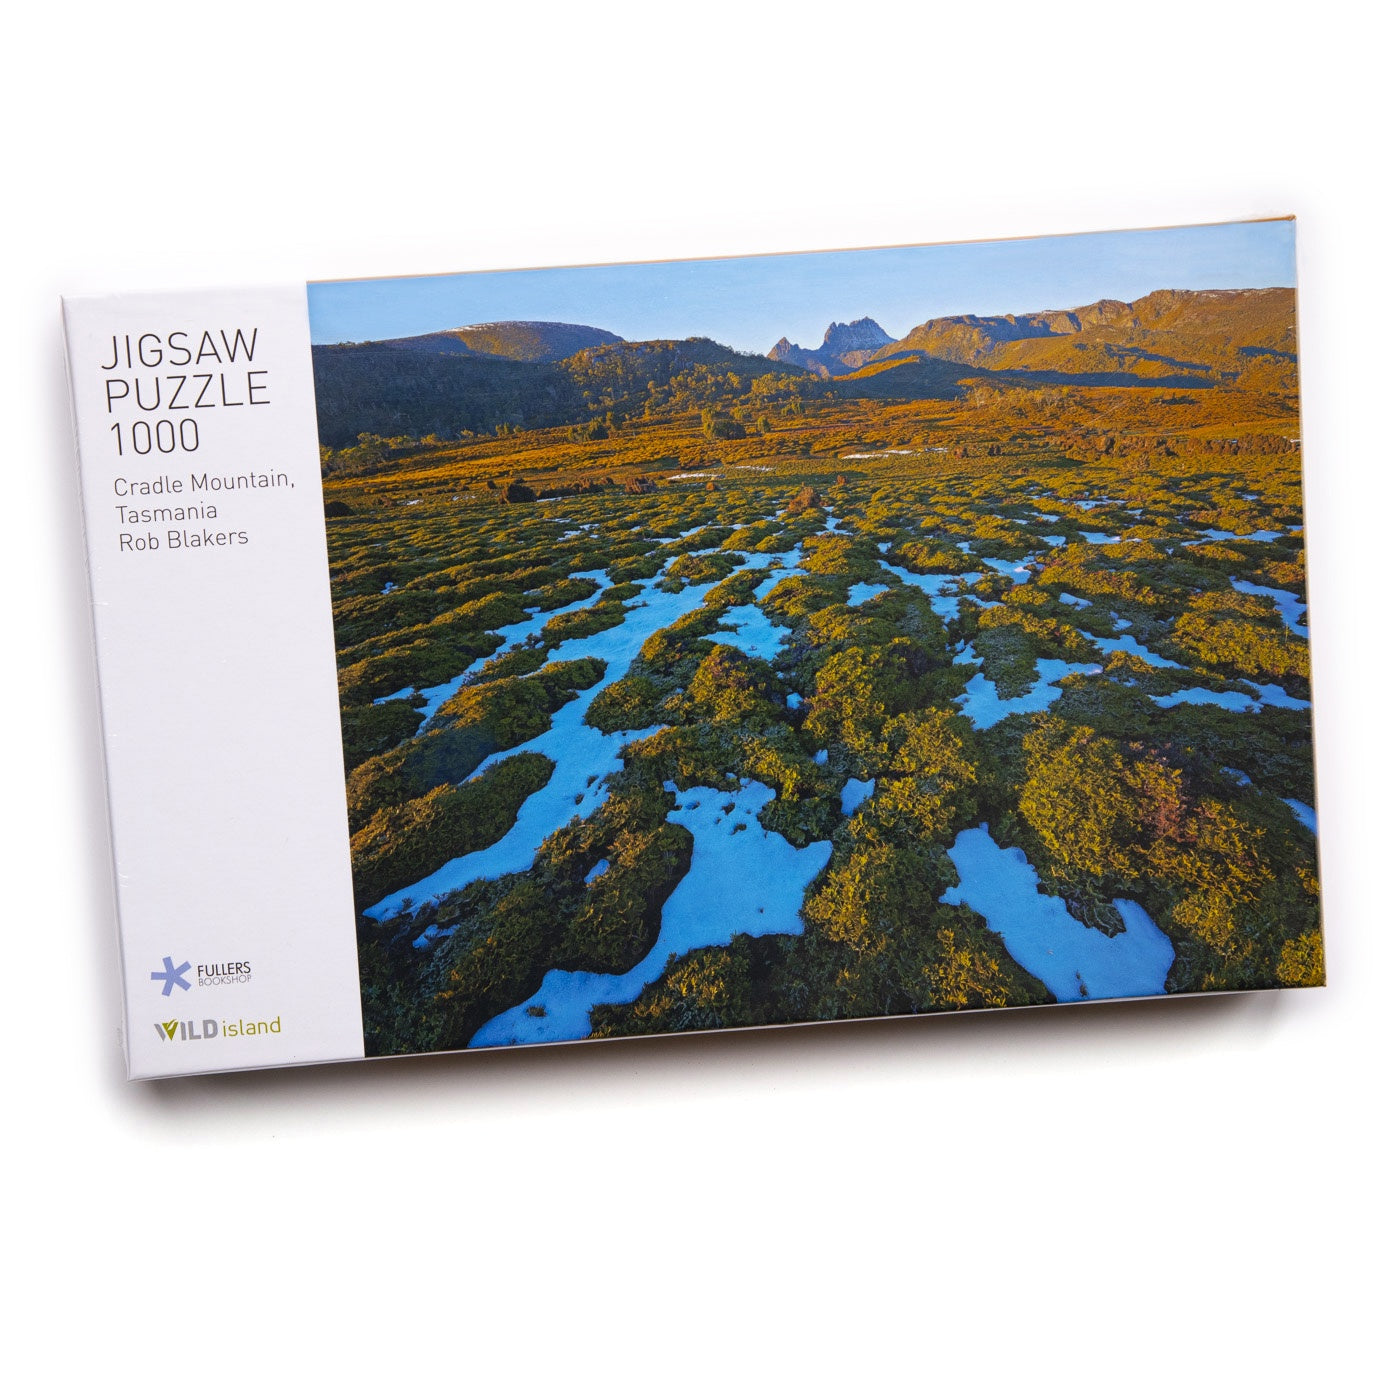 Rob Blakers Jigsaw Puzzle - Cradle Mountain